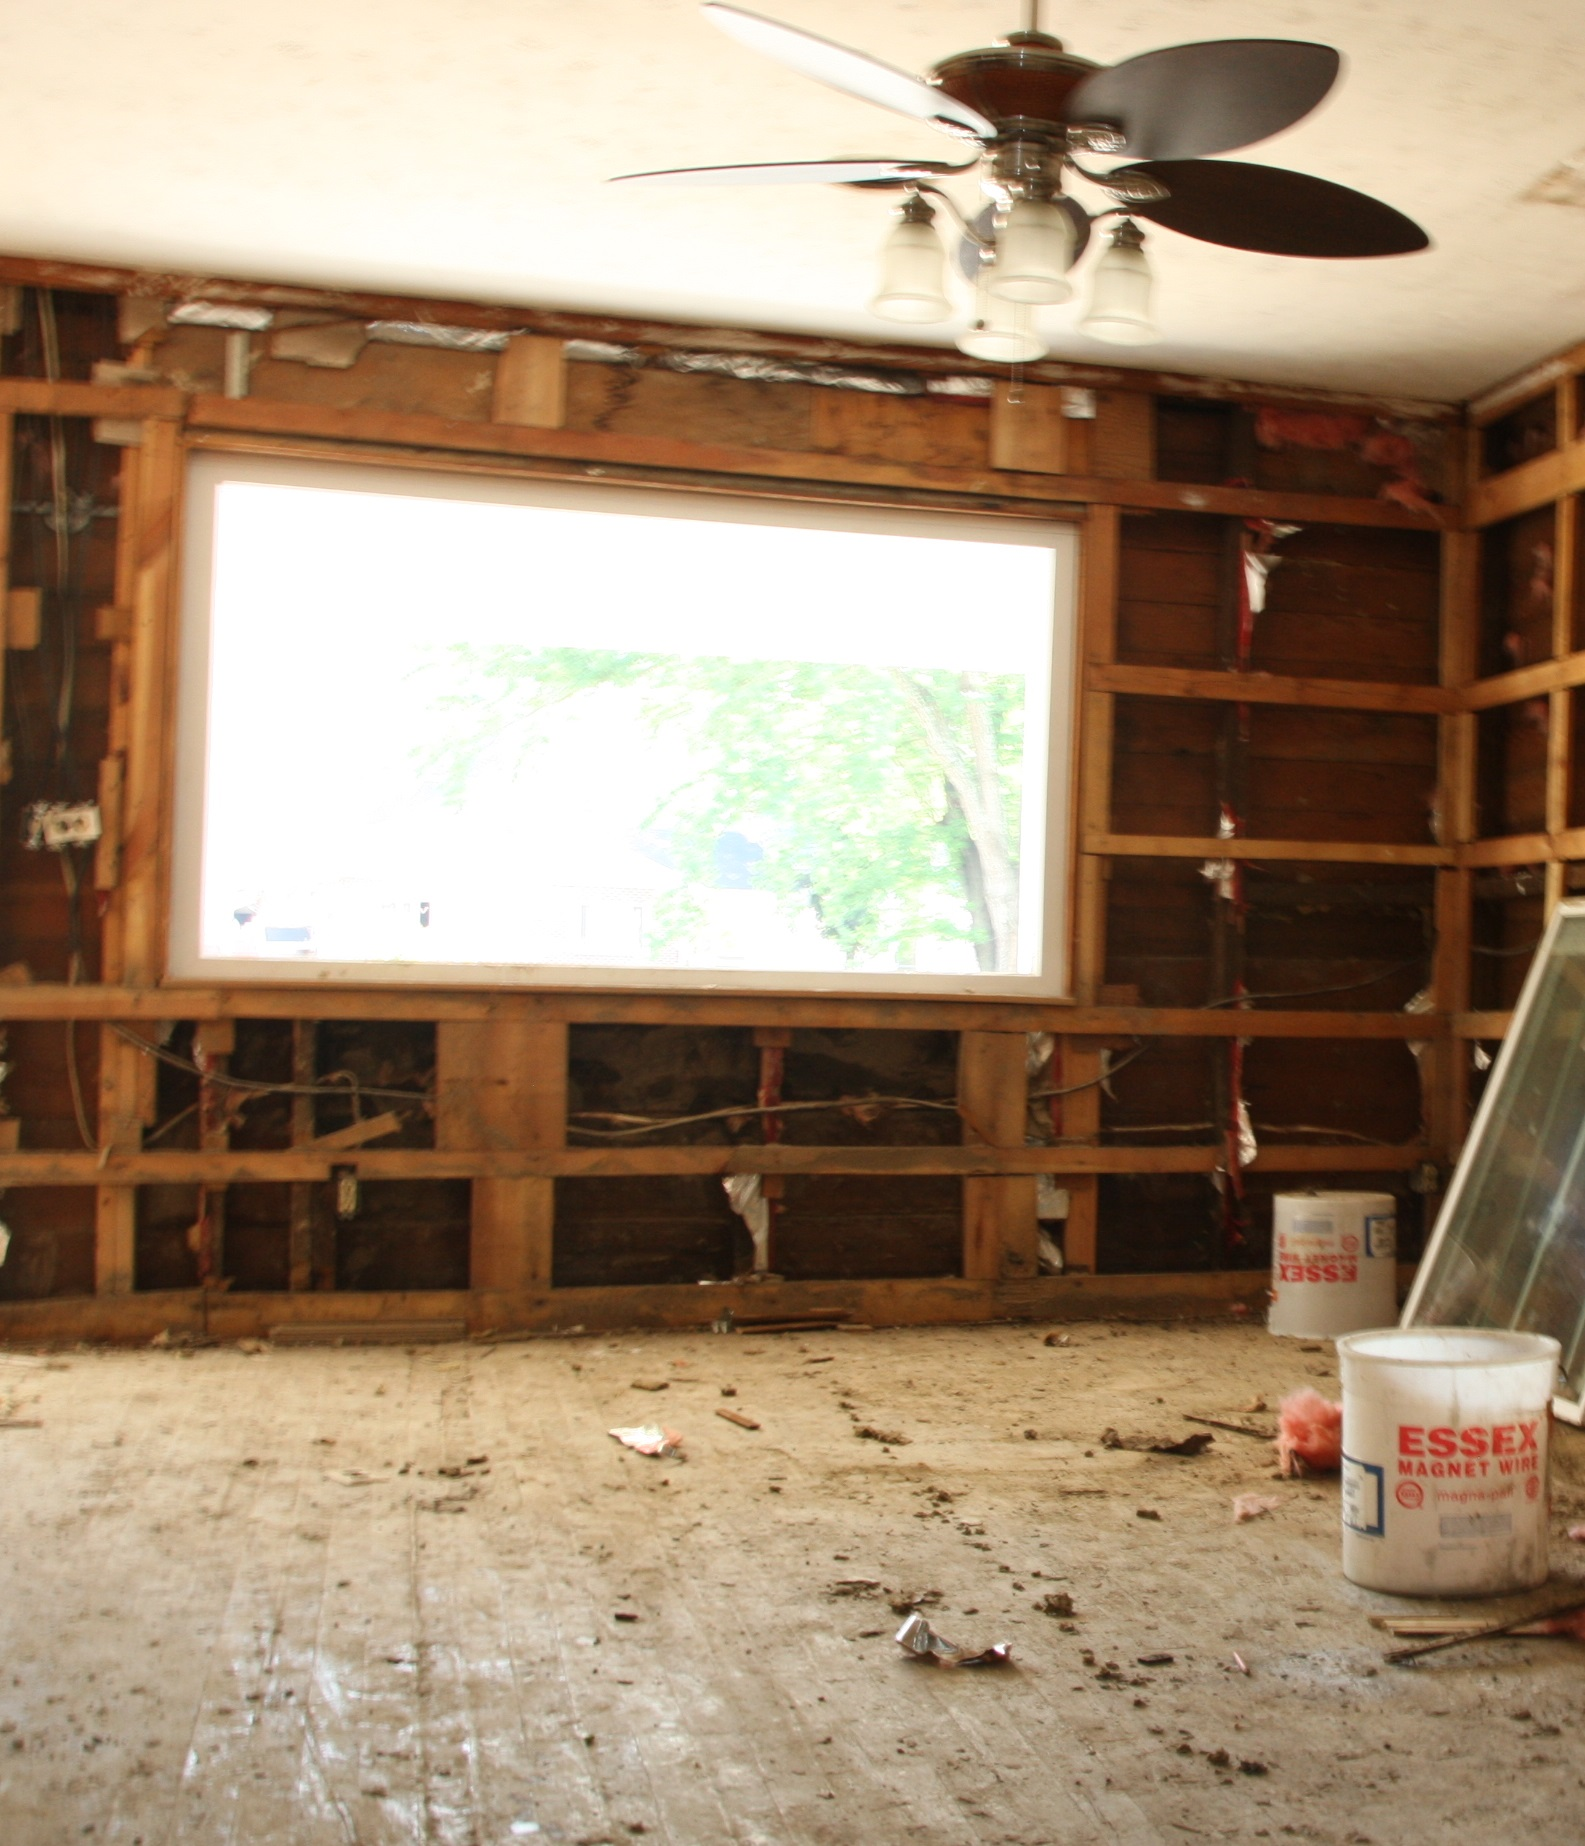 How to tell when current insulation is damaged or needs replacing